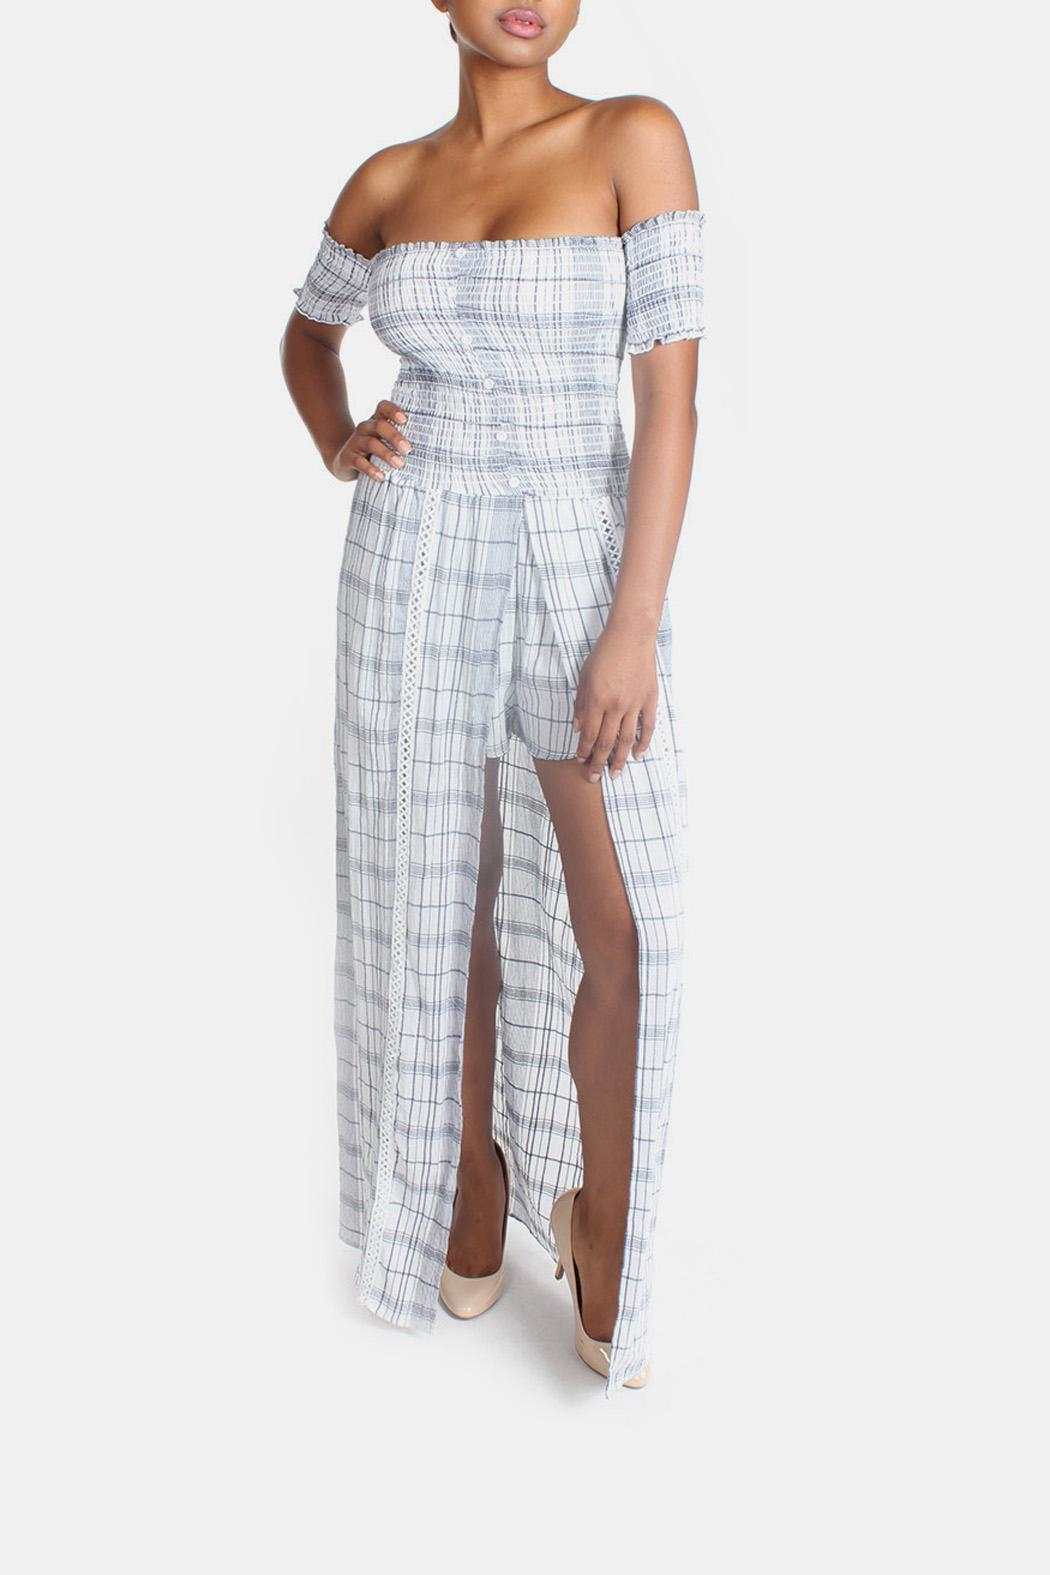 Sage Summer Plaid-Romper Maxi-Dress - Front Full Image